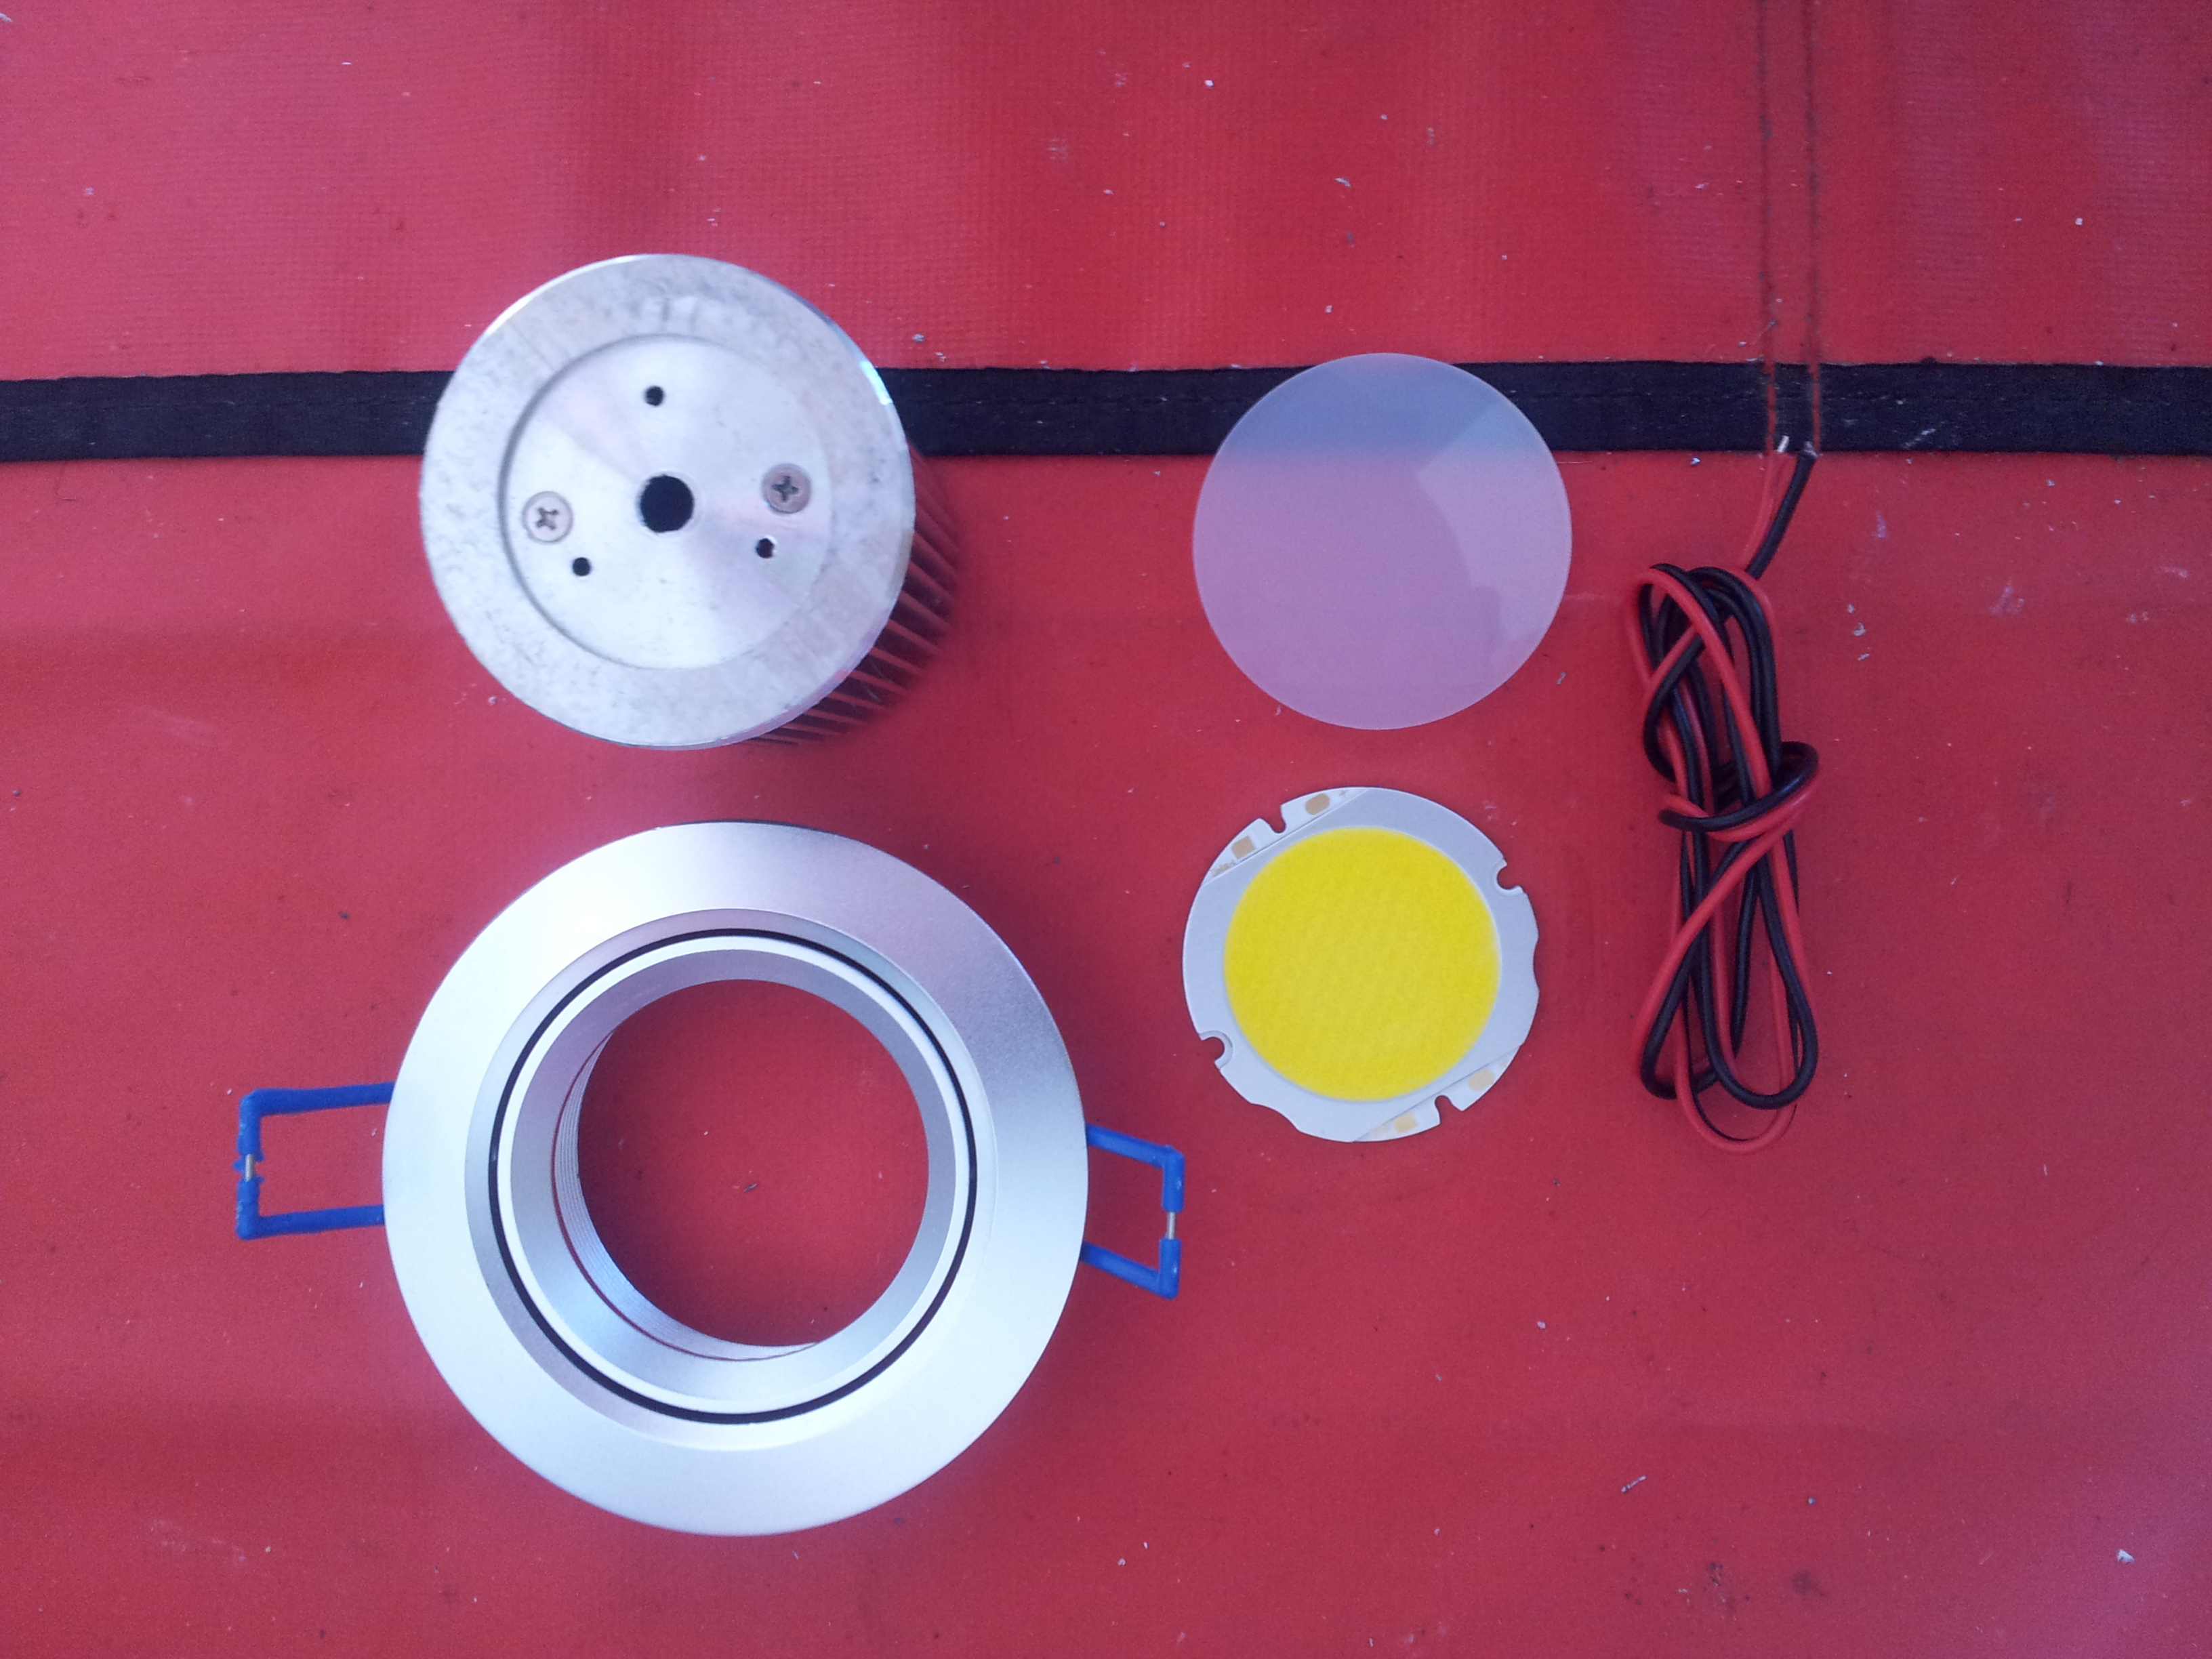 13-Watt LED Ceiling Down-Light Kit